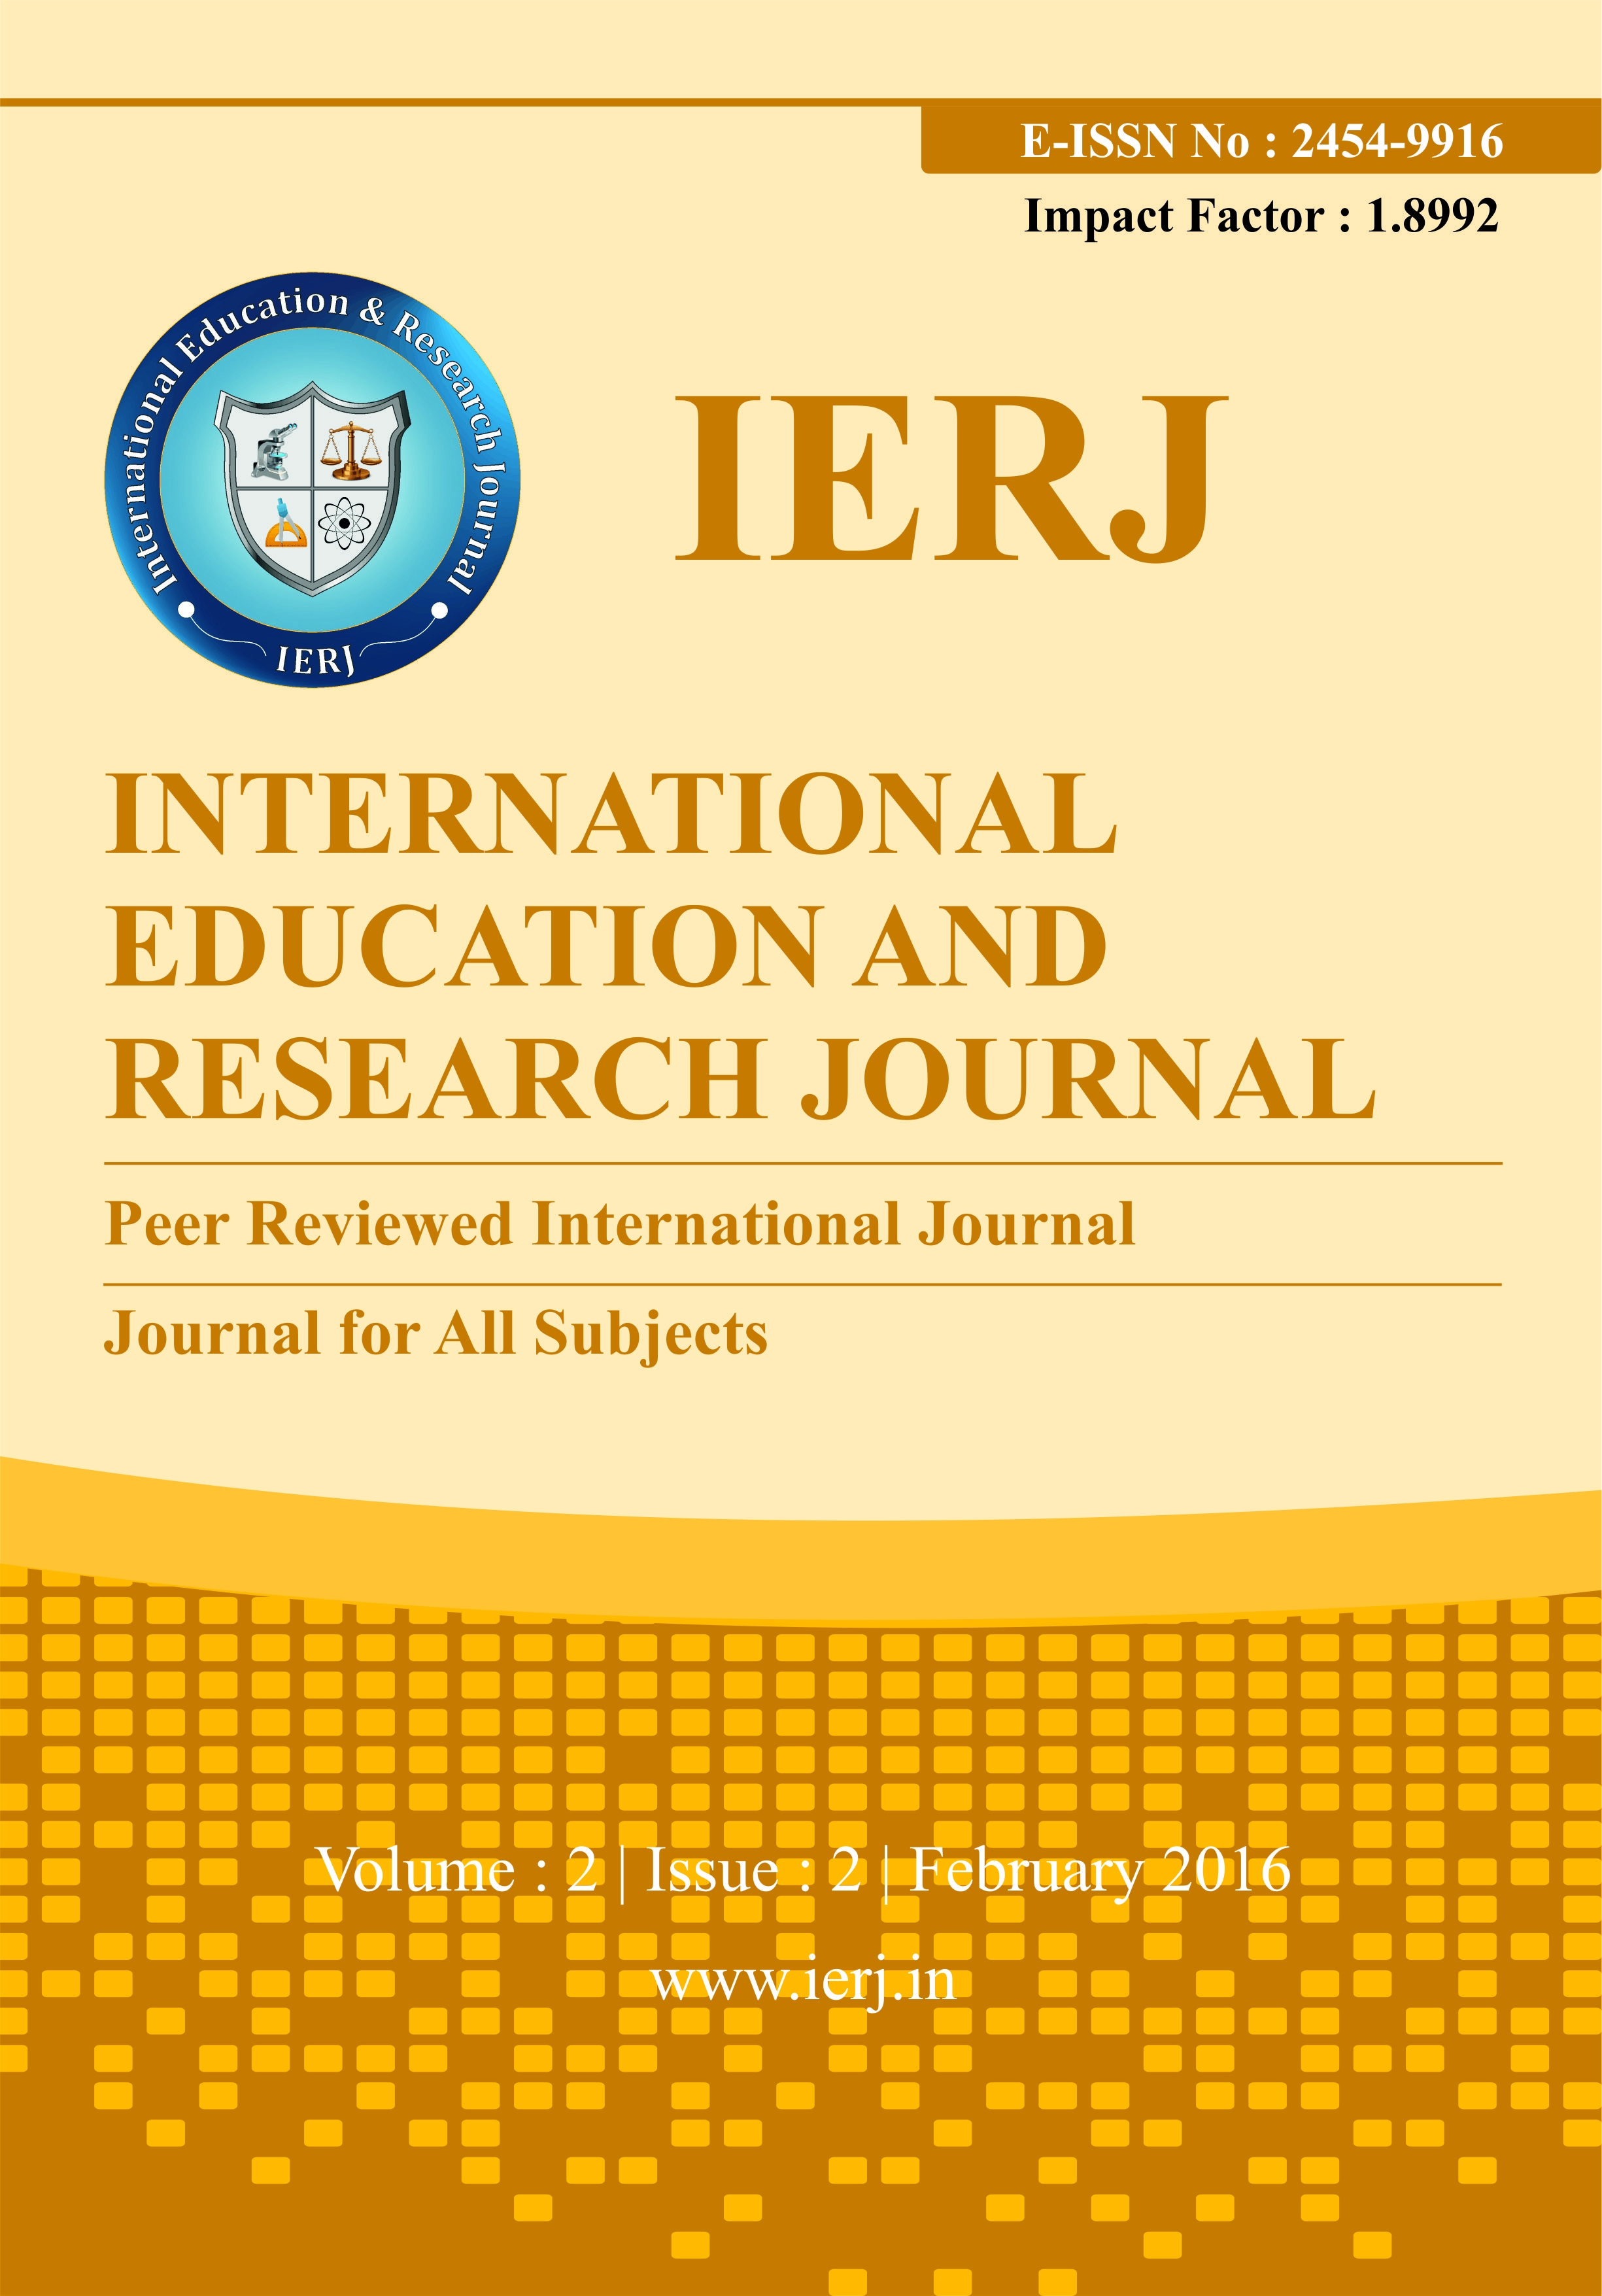 Journal: International Education and Research Journal